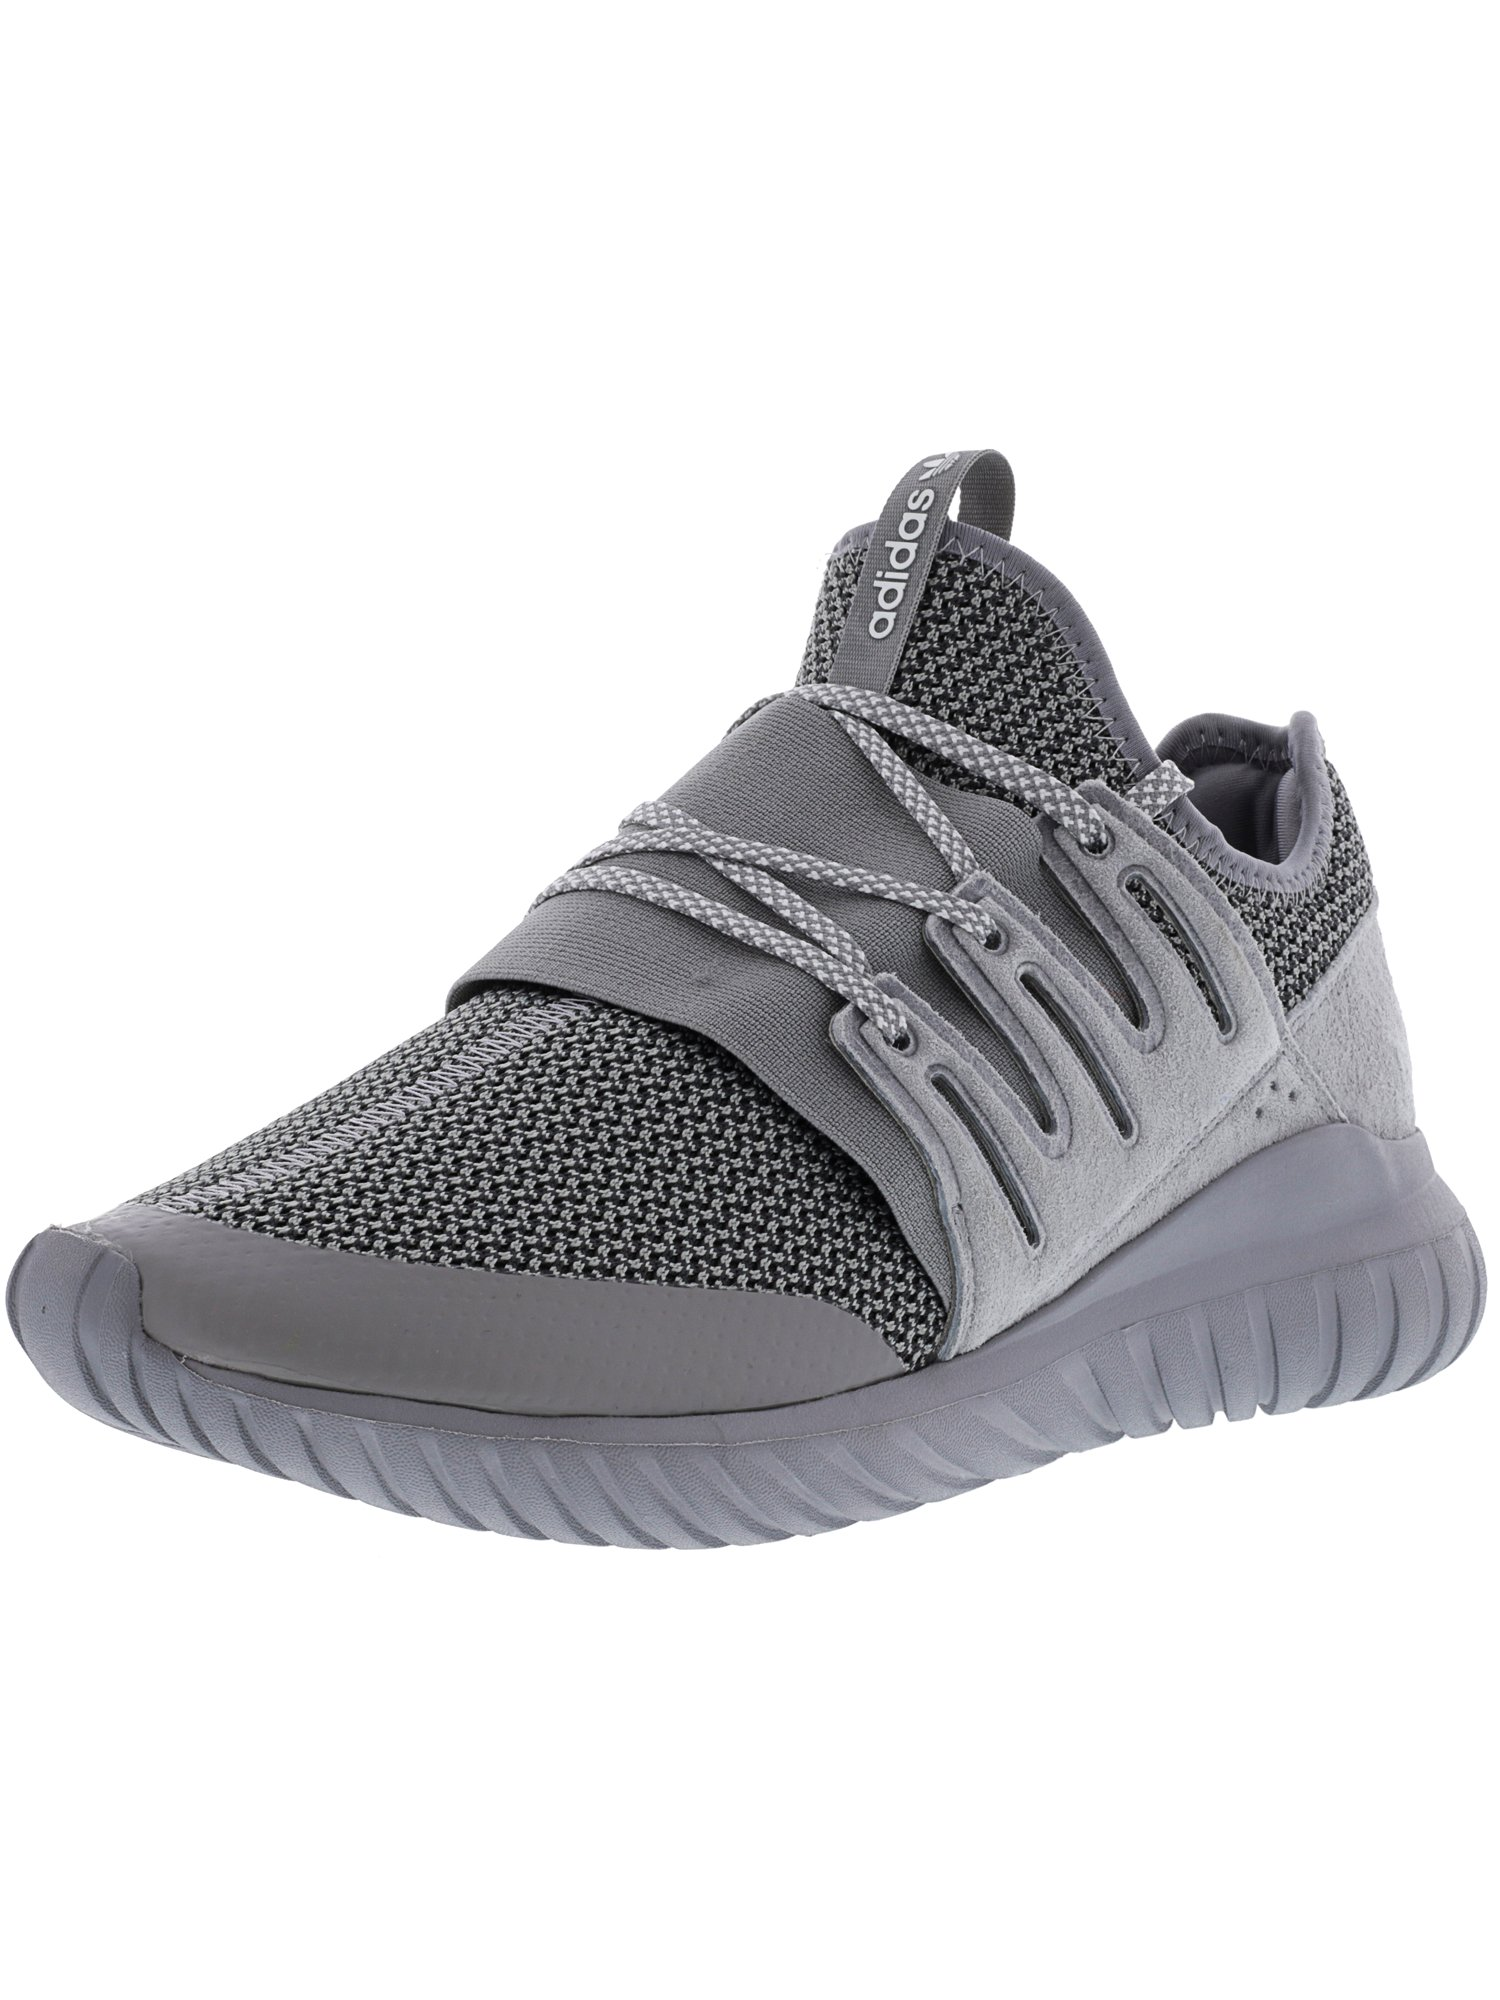 timeless design b8a6d d69bc Adidas Men's Tubular Radial Charcoal Solid Grey / Ankle-High ...